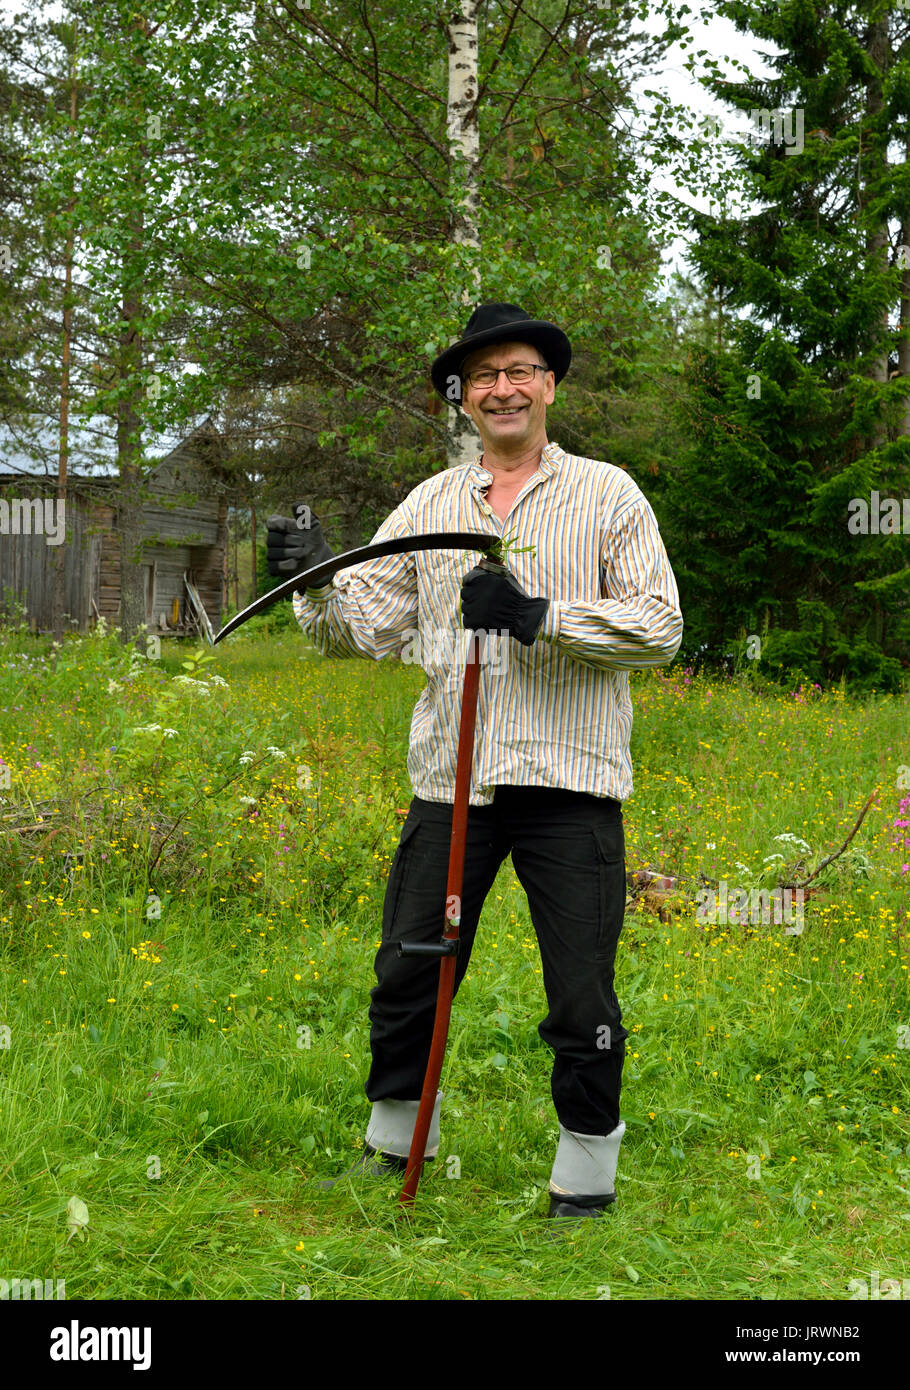 Middle-aged Farmer in old vintage clothes mows grass on lawn traditional  wooden scythe c72f301524d6